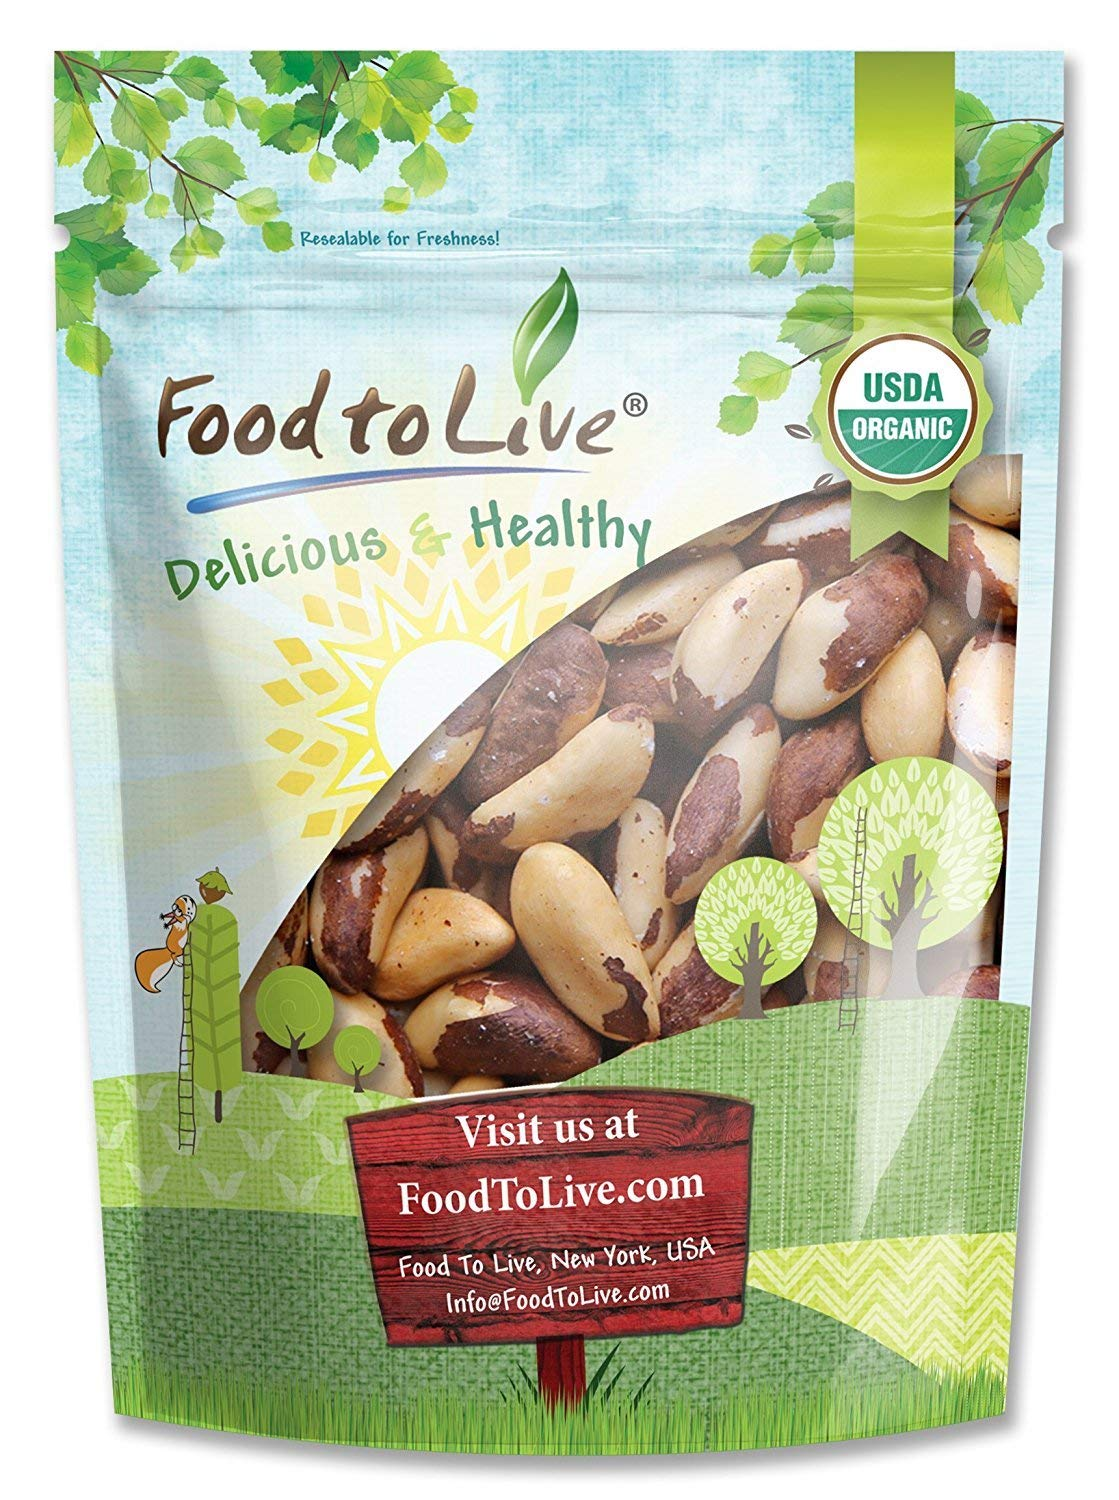 Organic Brazil Nuts, 4 Pounds – Raw, No Shell, Kosher, Non-GMO, Organic, Vegan – by Food to Live